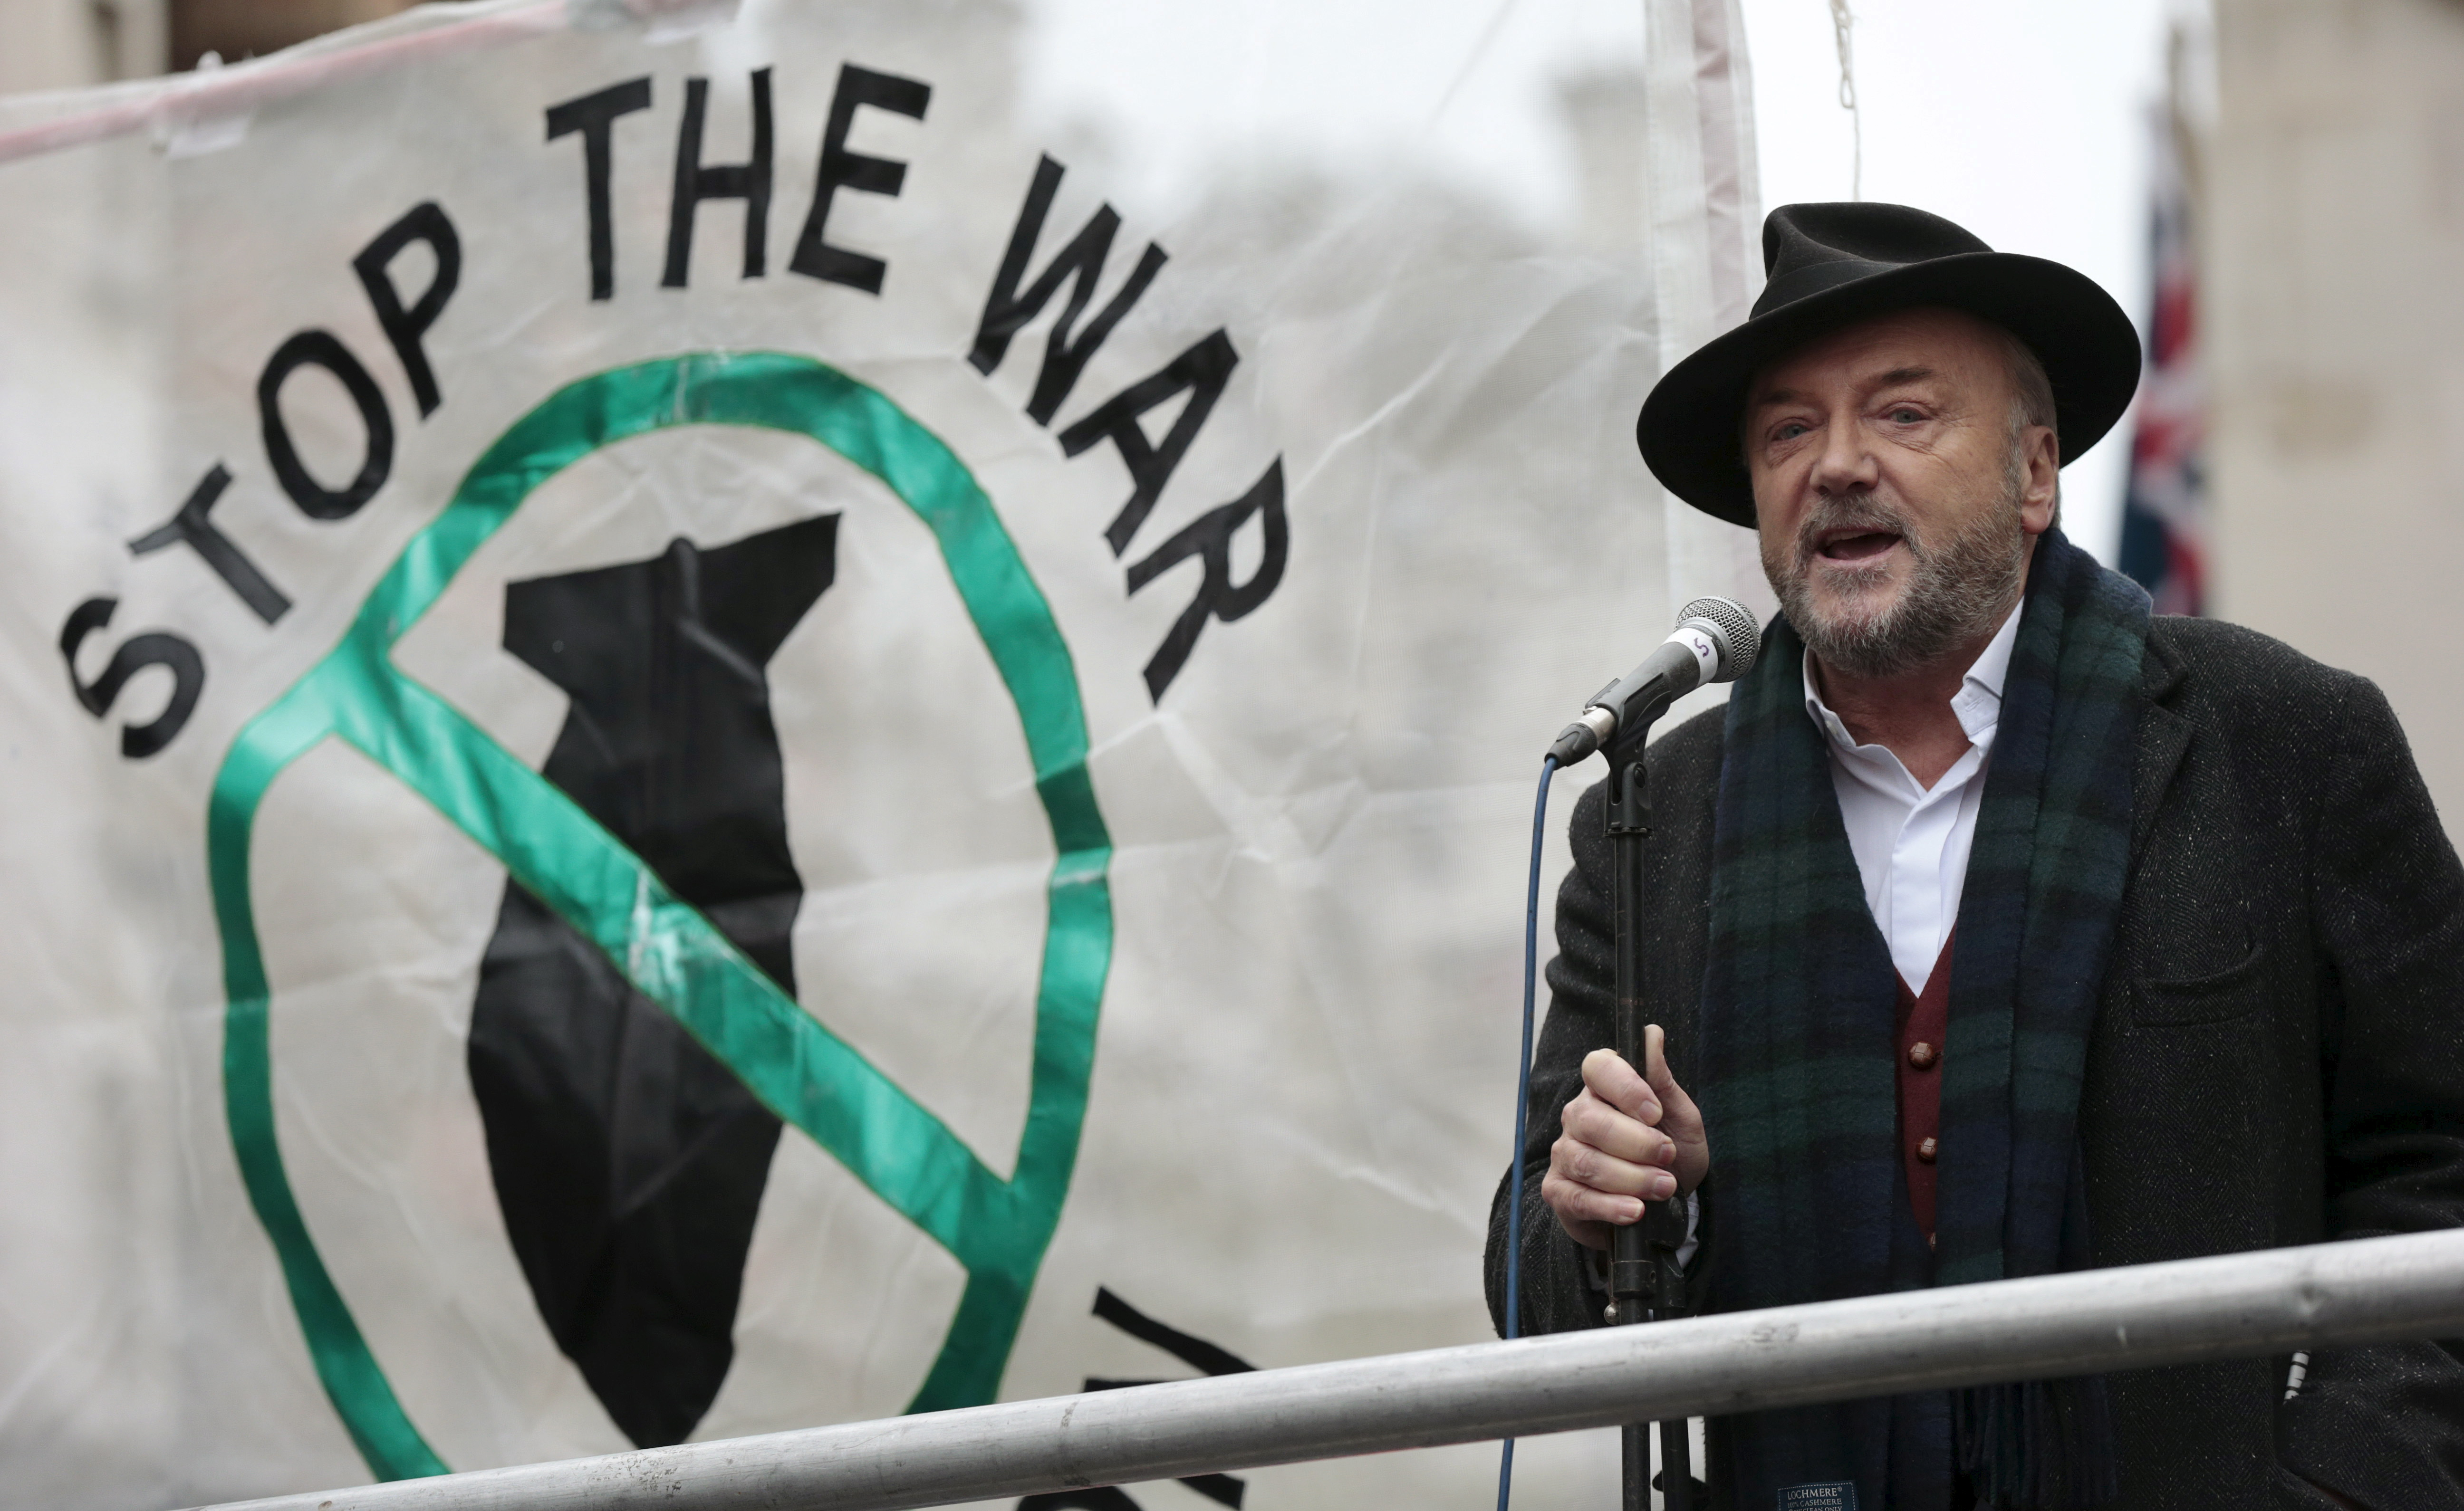 Anti-war activist and former British member of parliament George Galloway speaks at a rally against taking military action against Islamic State in Syria, outside Downing Street in London, Nov. 28, 2015.